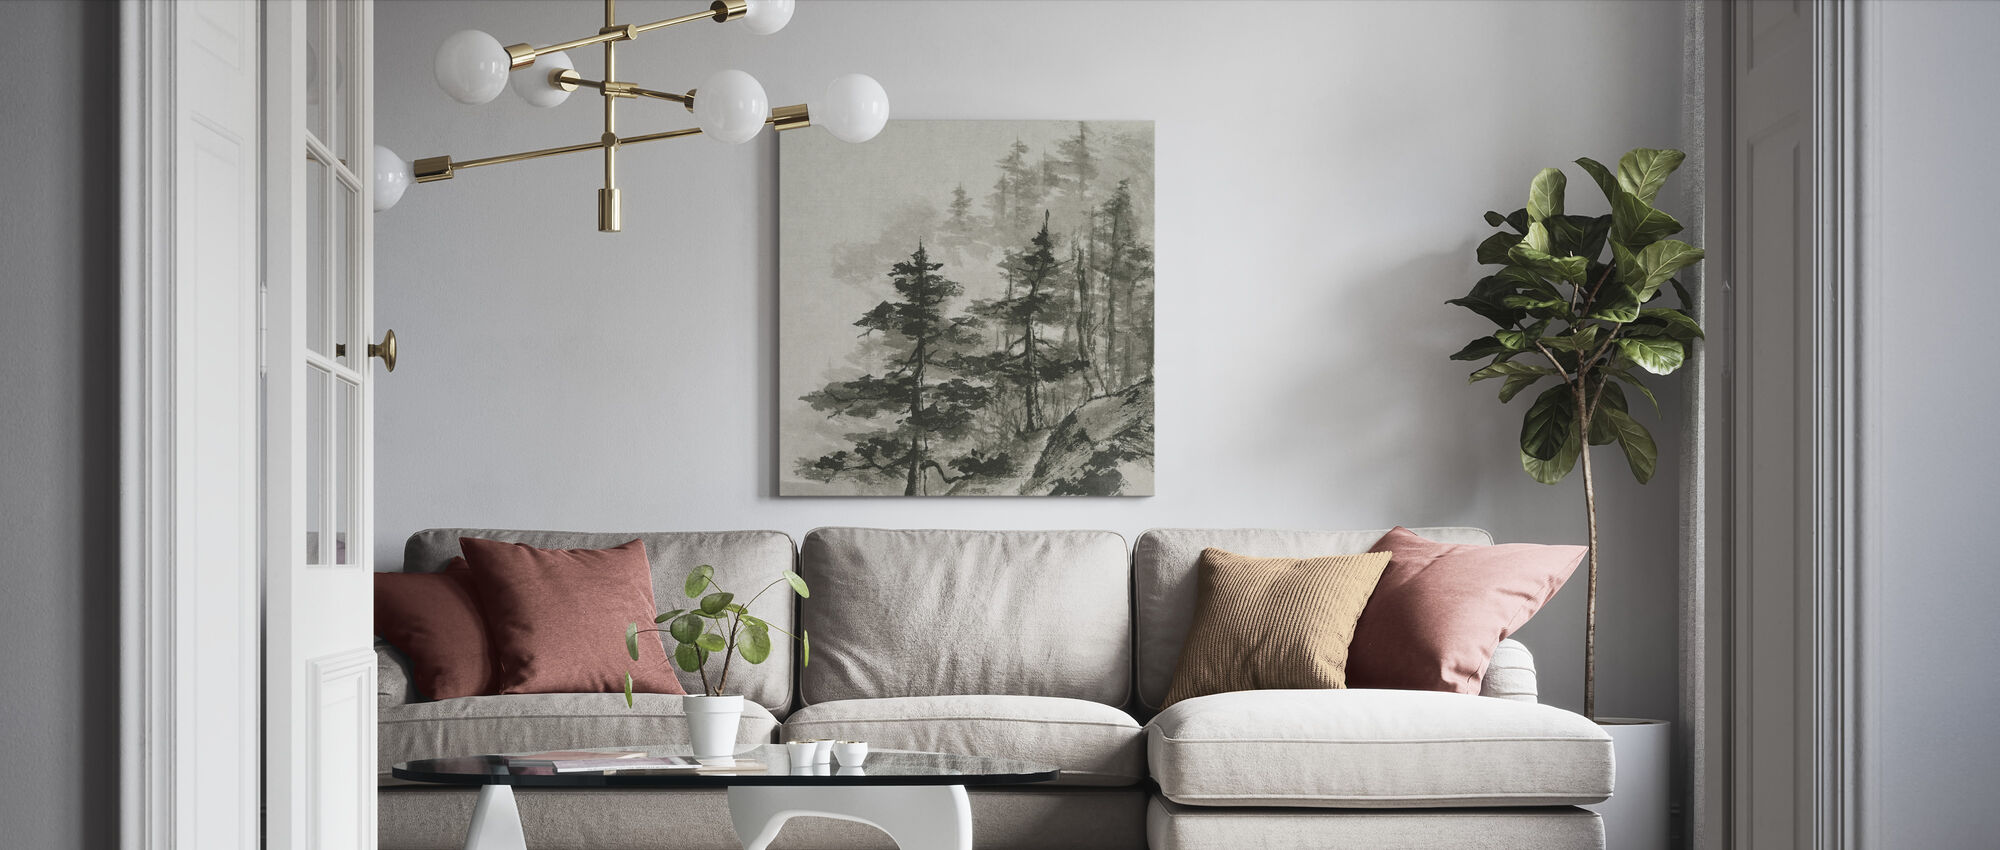 Sumi-boomtoppen - Canvas print - Woonkamer